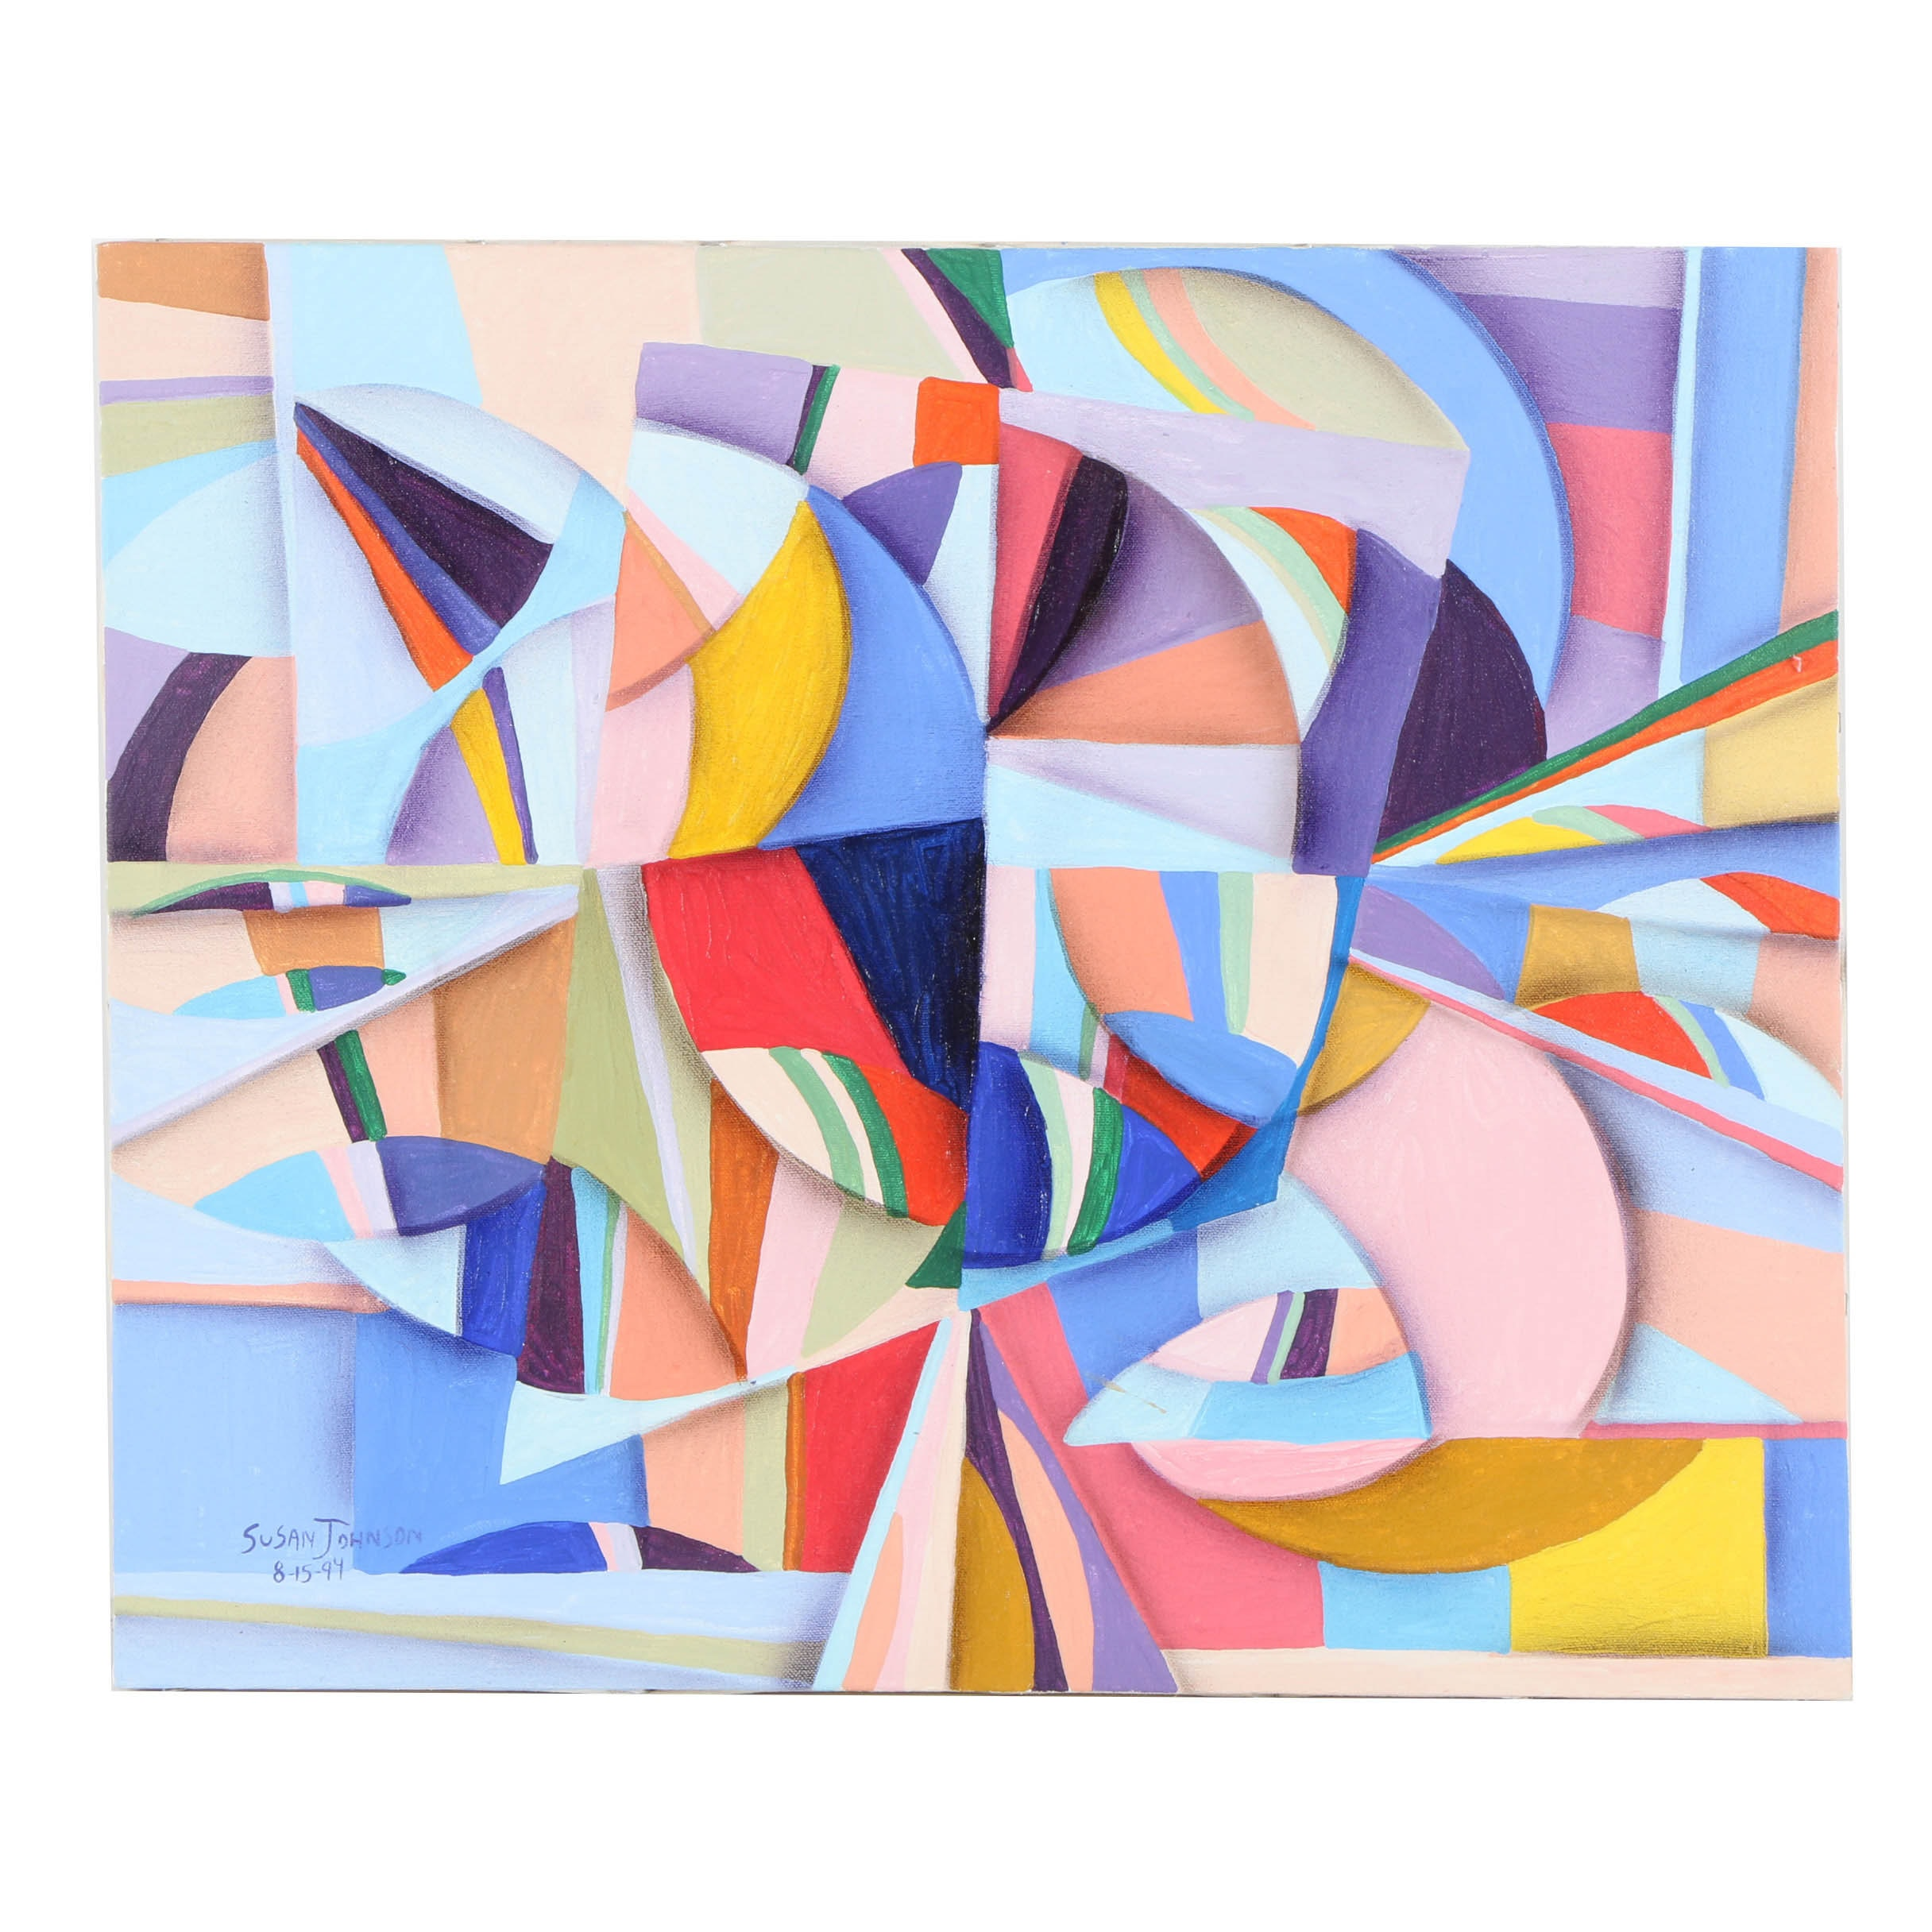 Susan Johnson Acrylic Painting on Canvas of Abstract Composition